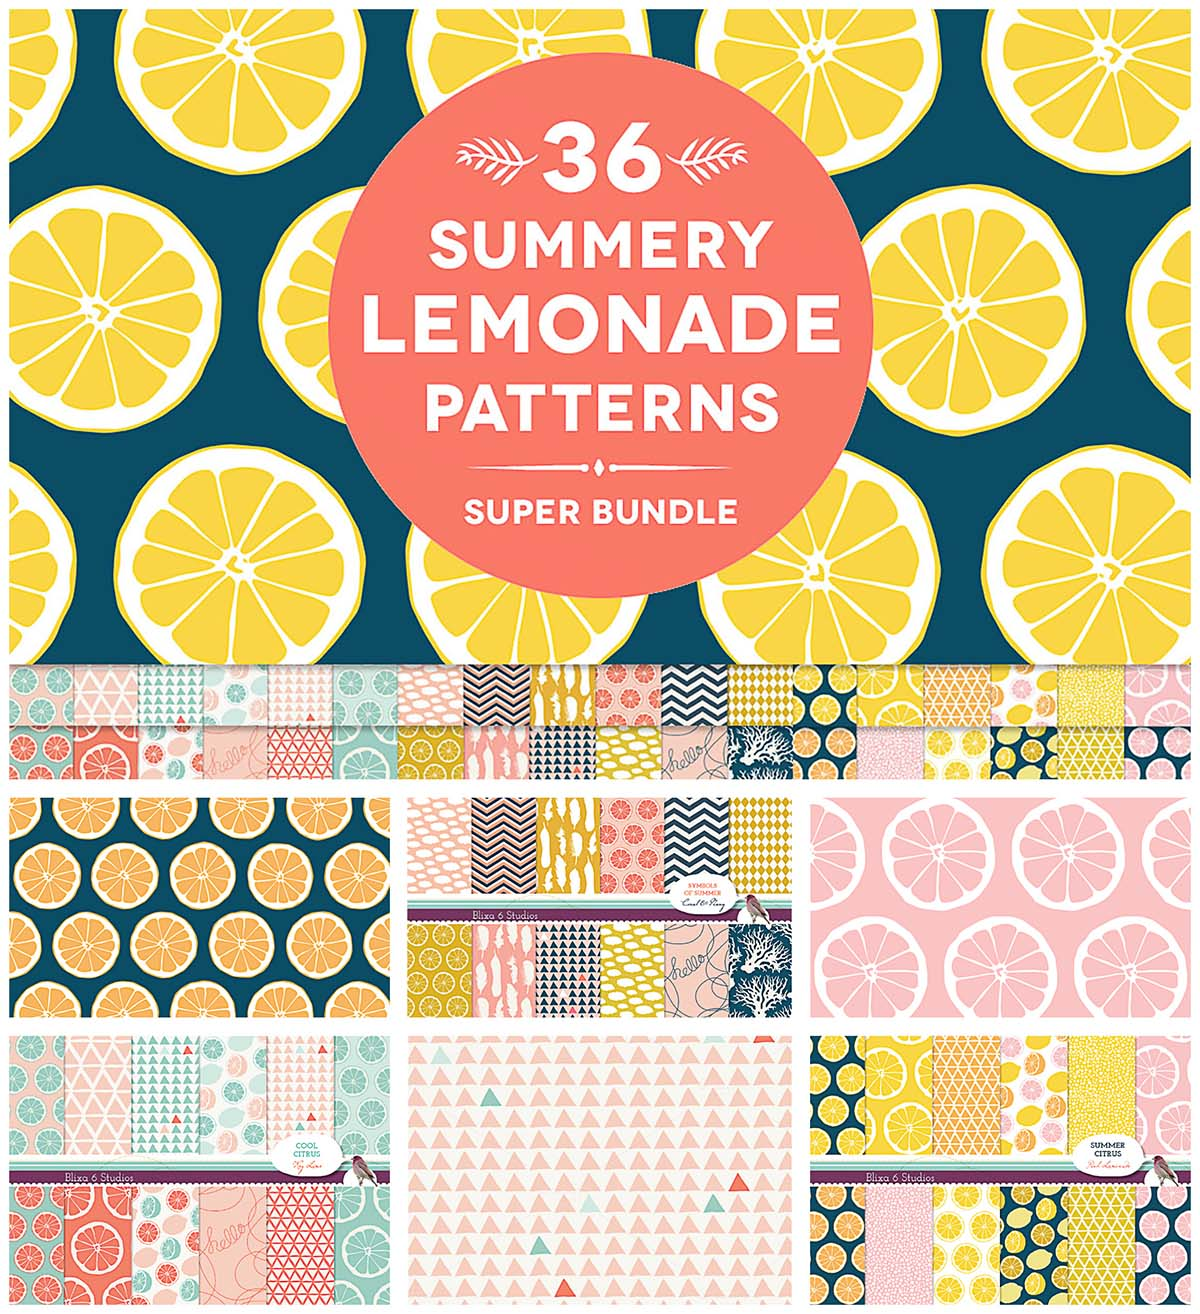 Summer lemonade patterns